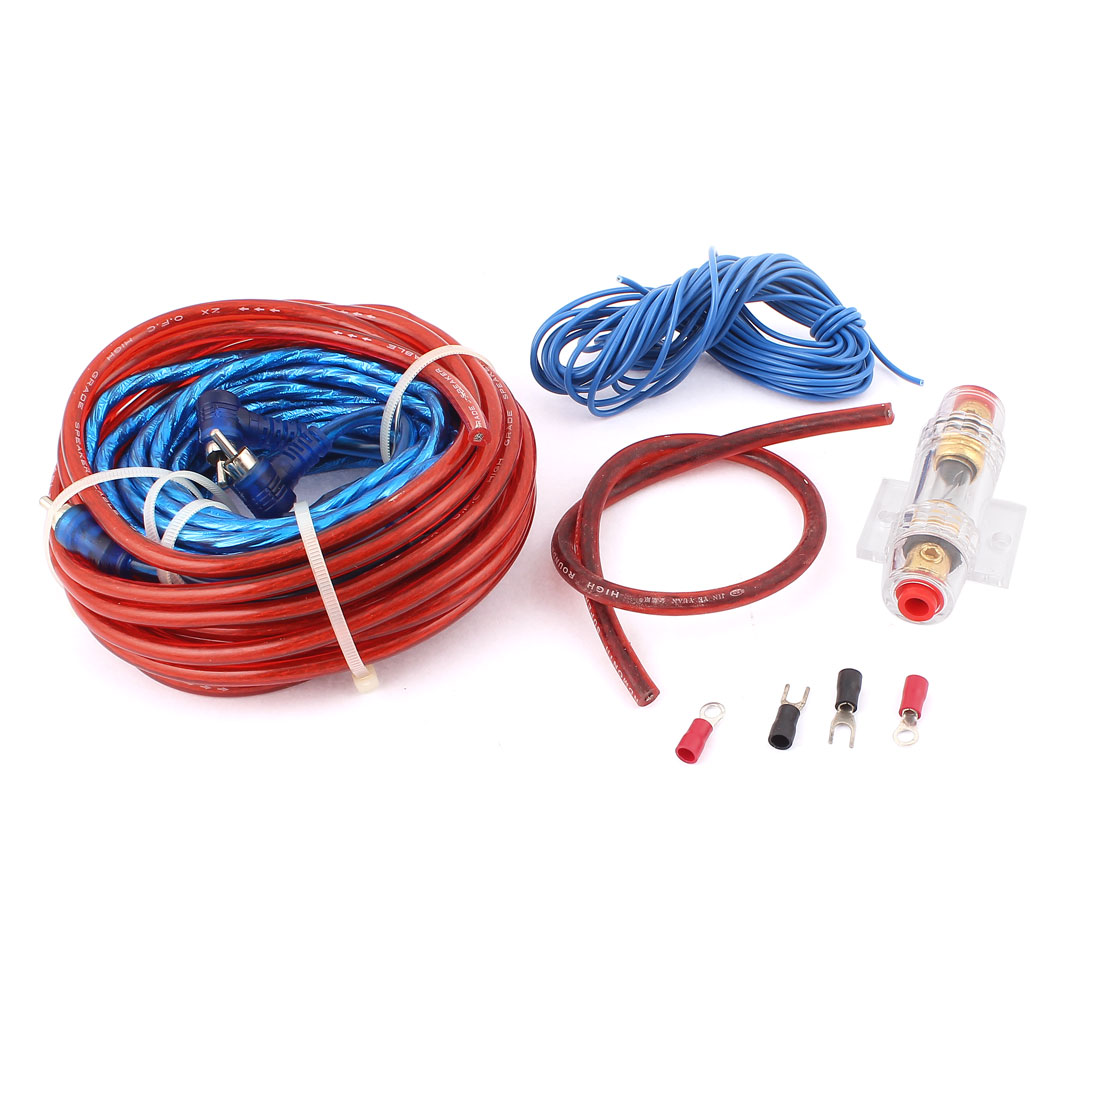 Unique Bargains 5 in 1 Vehicle Car Audio Battery Copper Cable Amplifier Wiring Kit Set